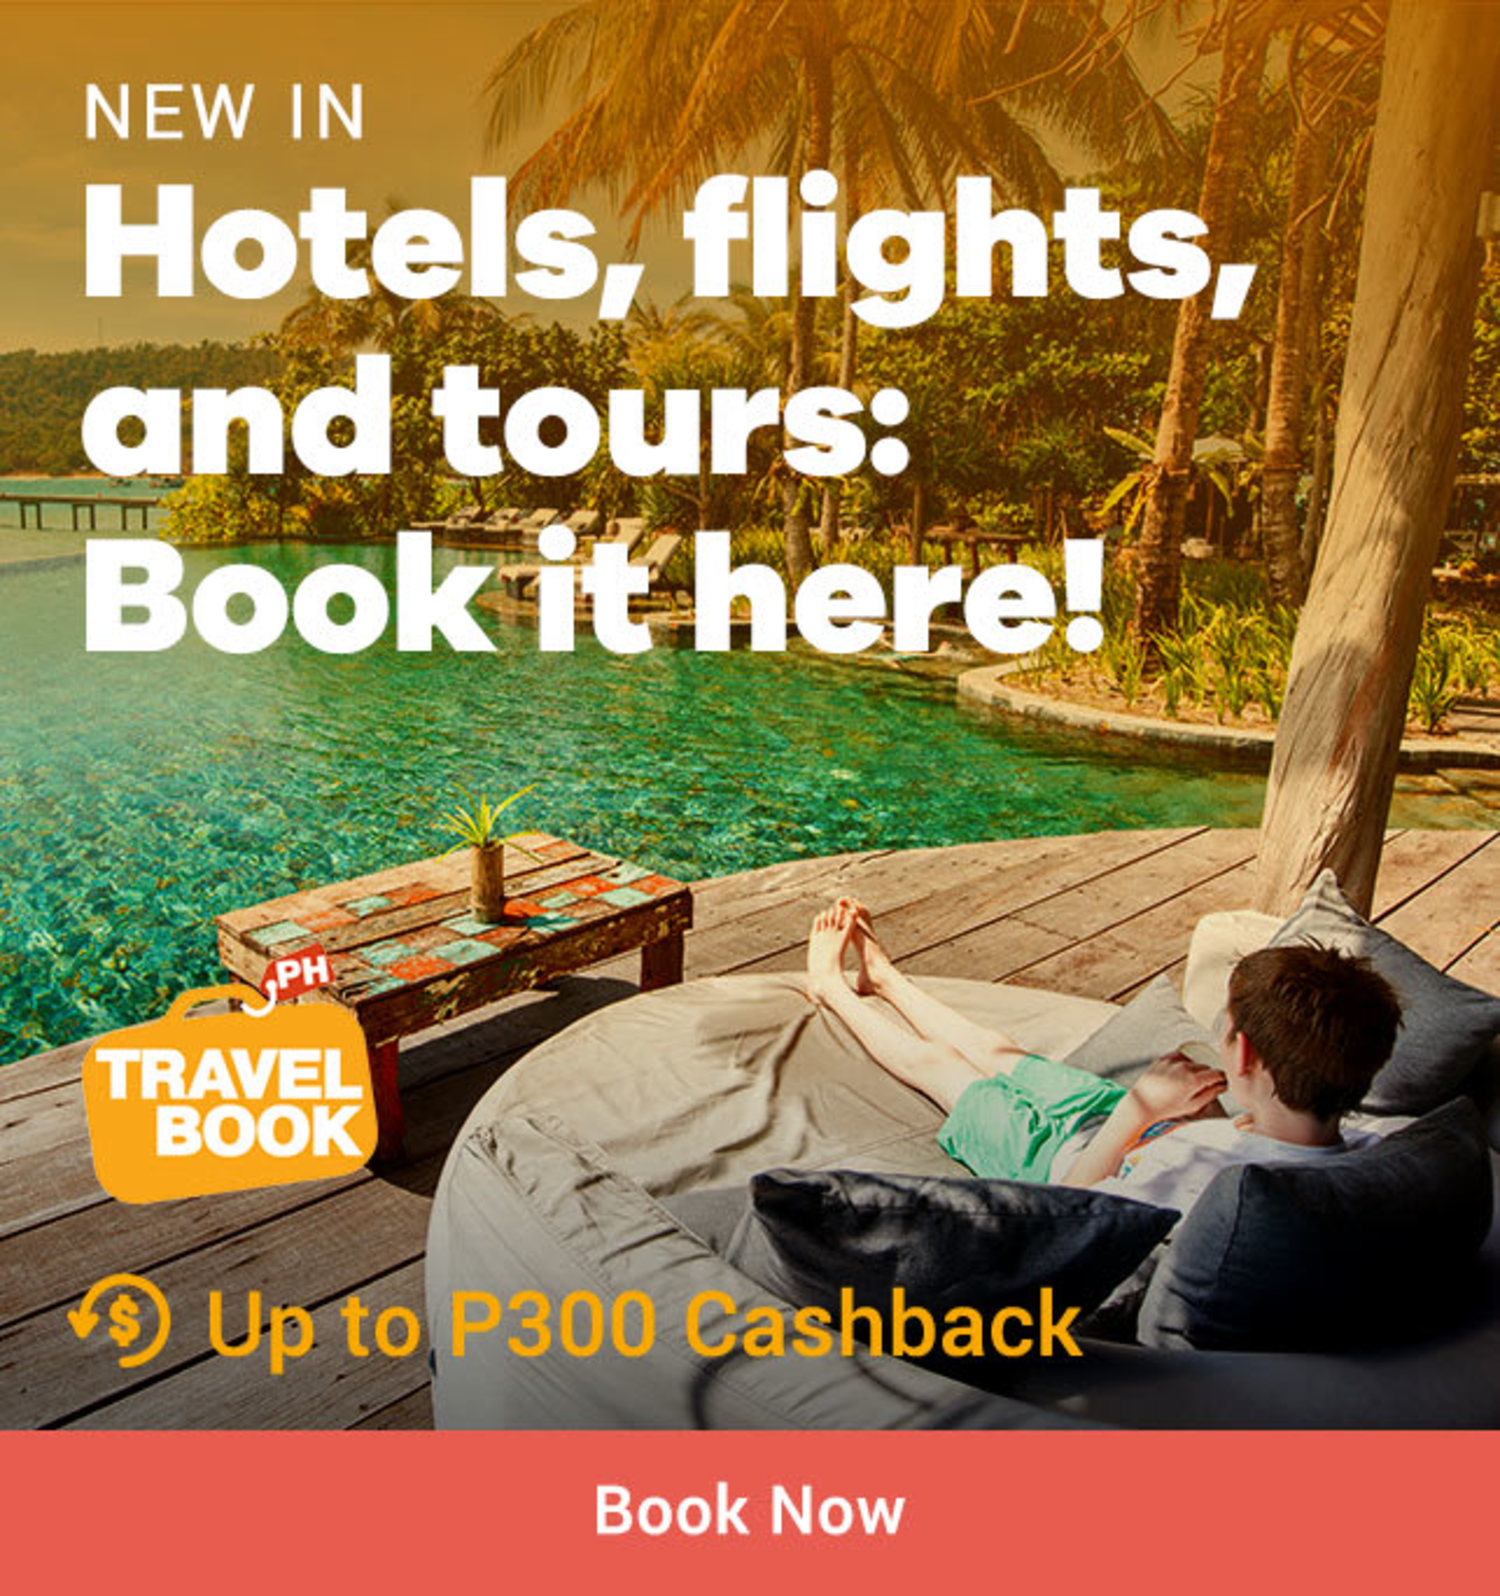 Travelbook Hotels, flights, and tours: Book it here! + Up to P300 Cashback